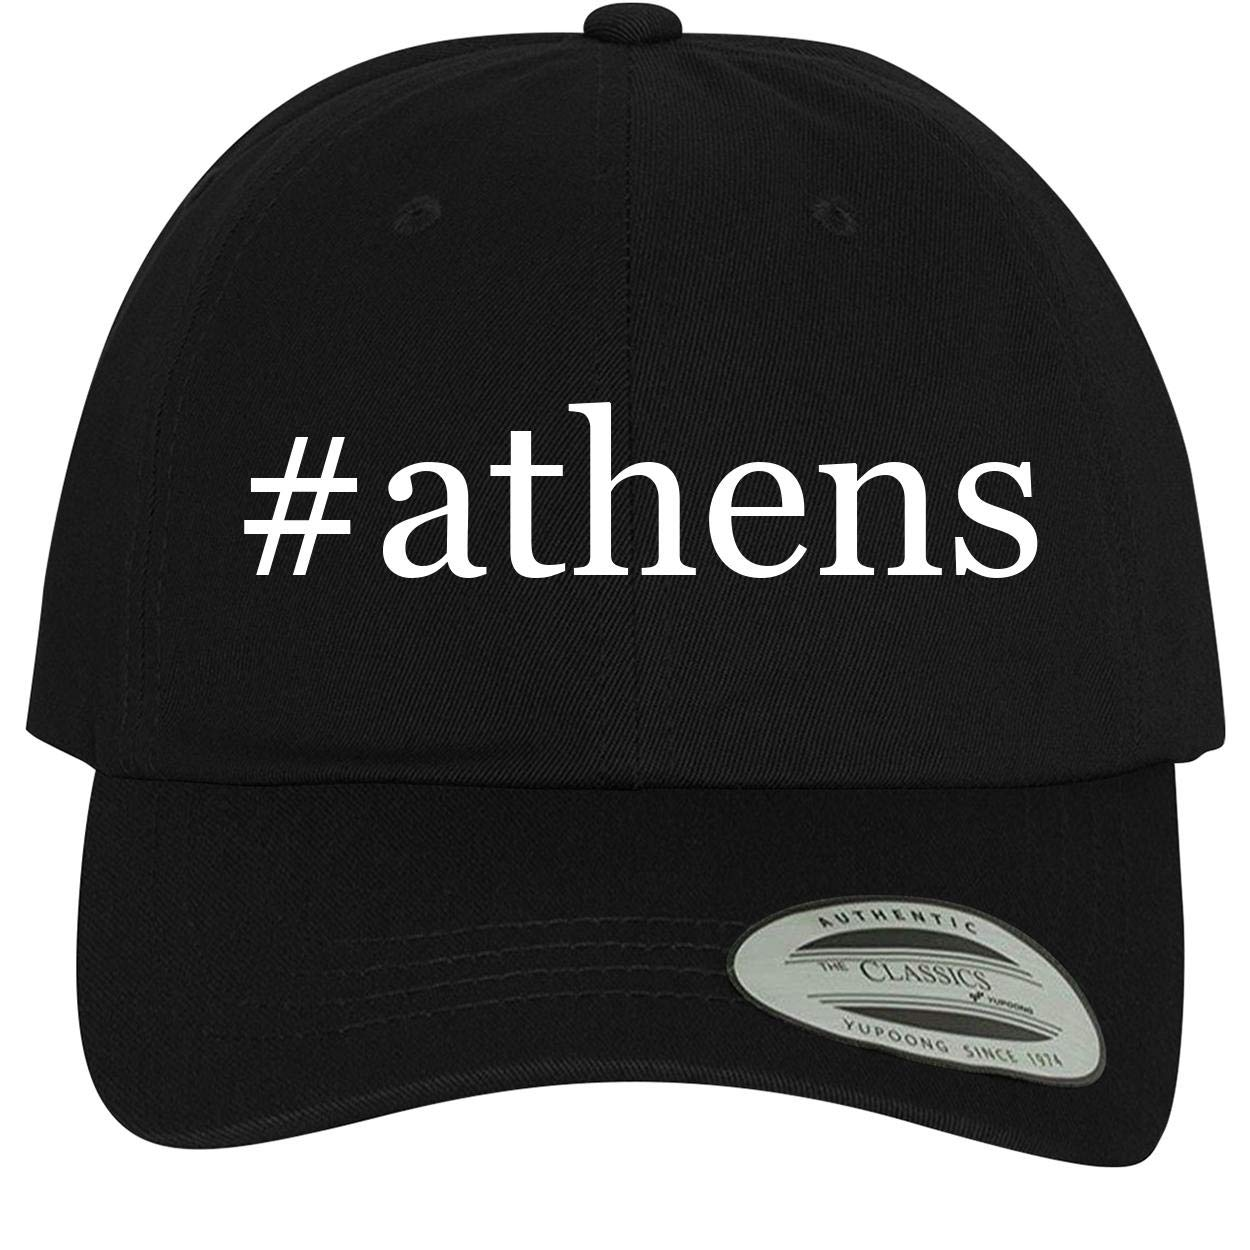 BH Cool Designs #Athens Comfortable Dad Hat Baseball Cap